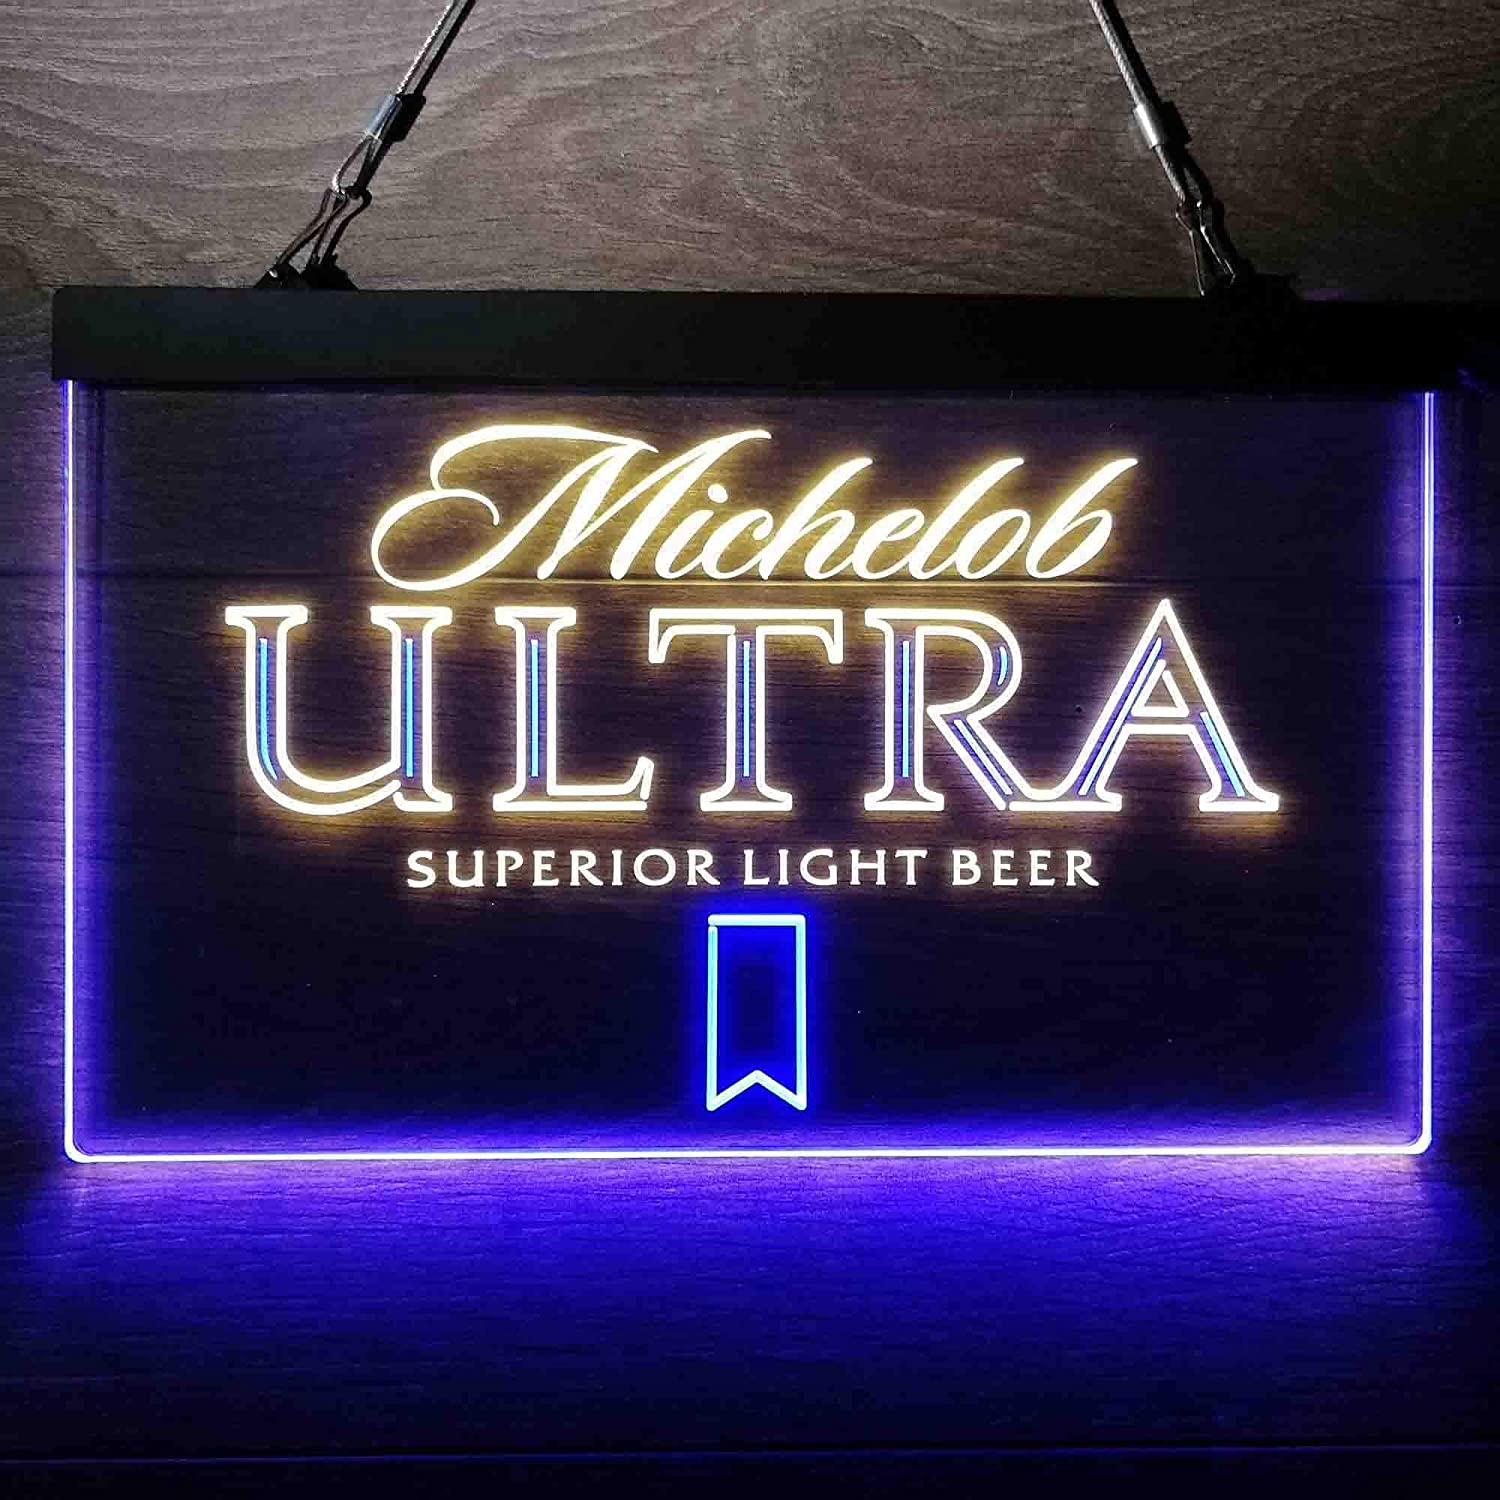 zusme Michelob Ultra Beer Colorful LED Neon Light Discount mail order Sign Cave Man Ranking TOP2